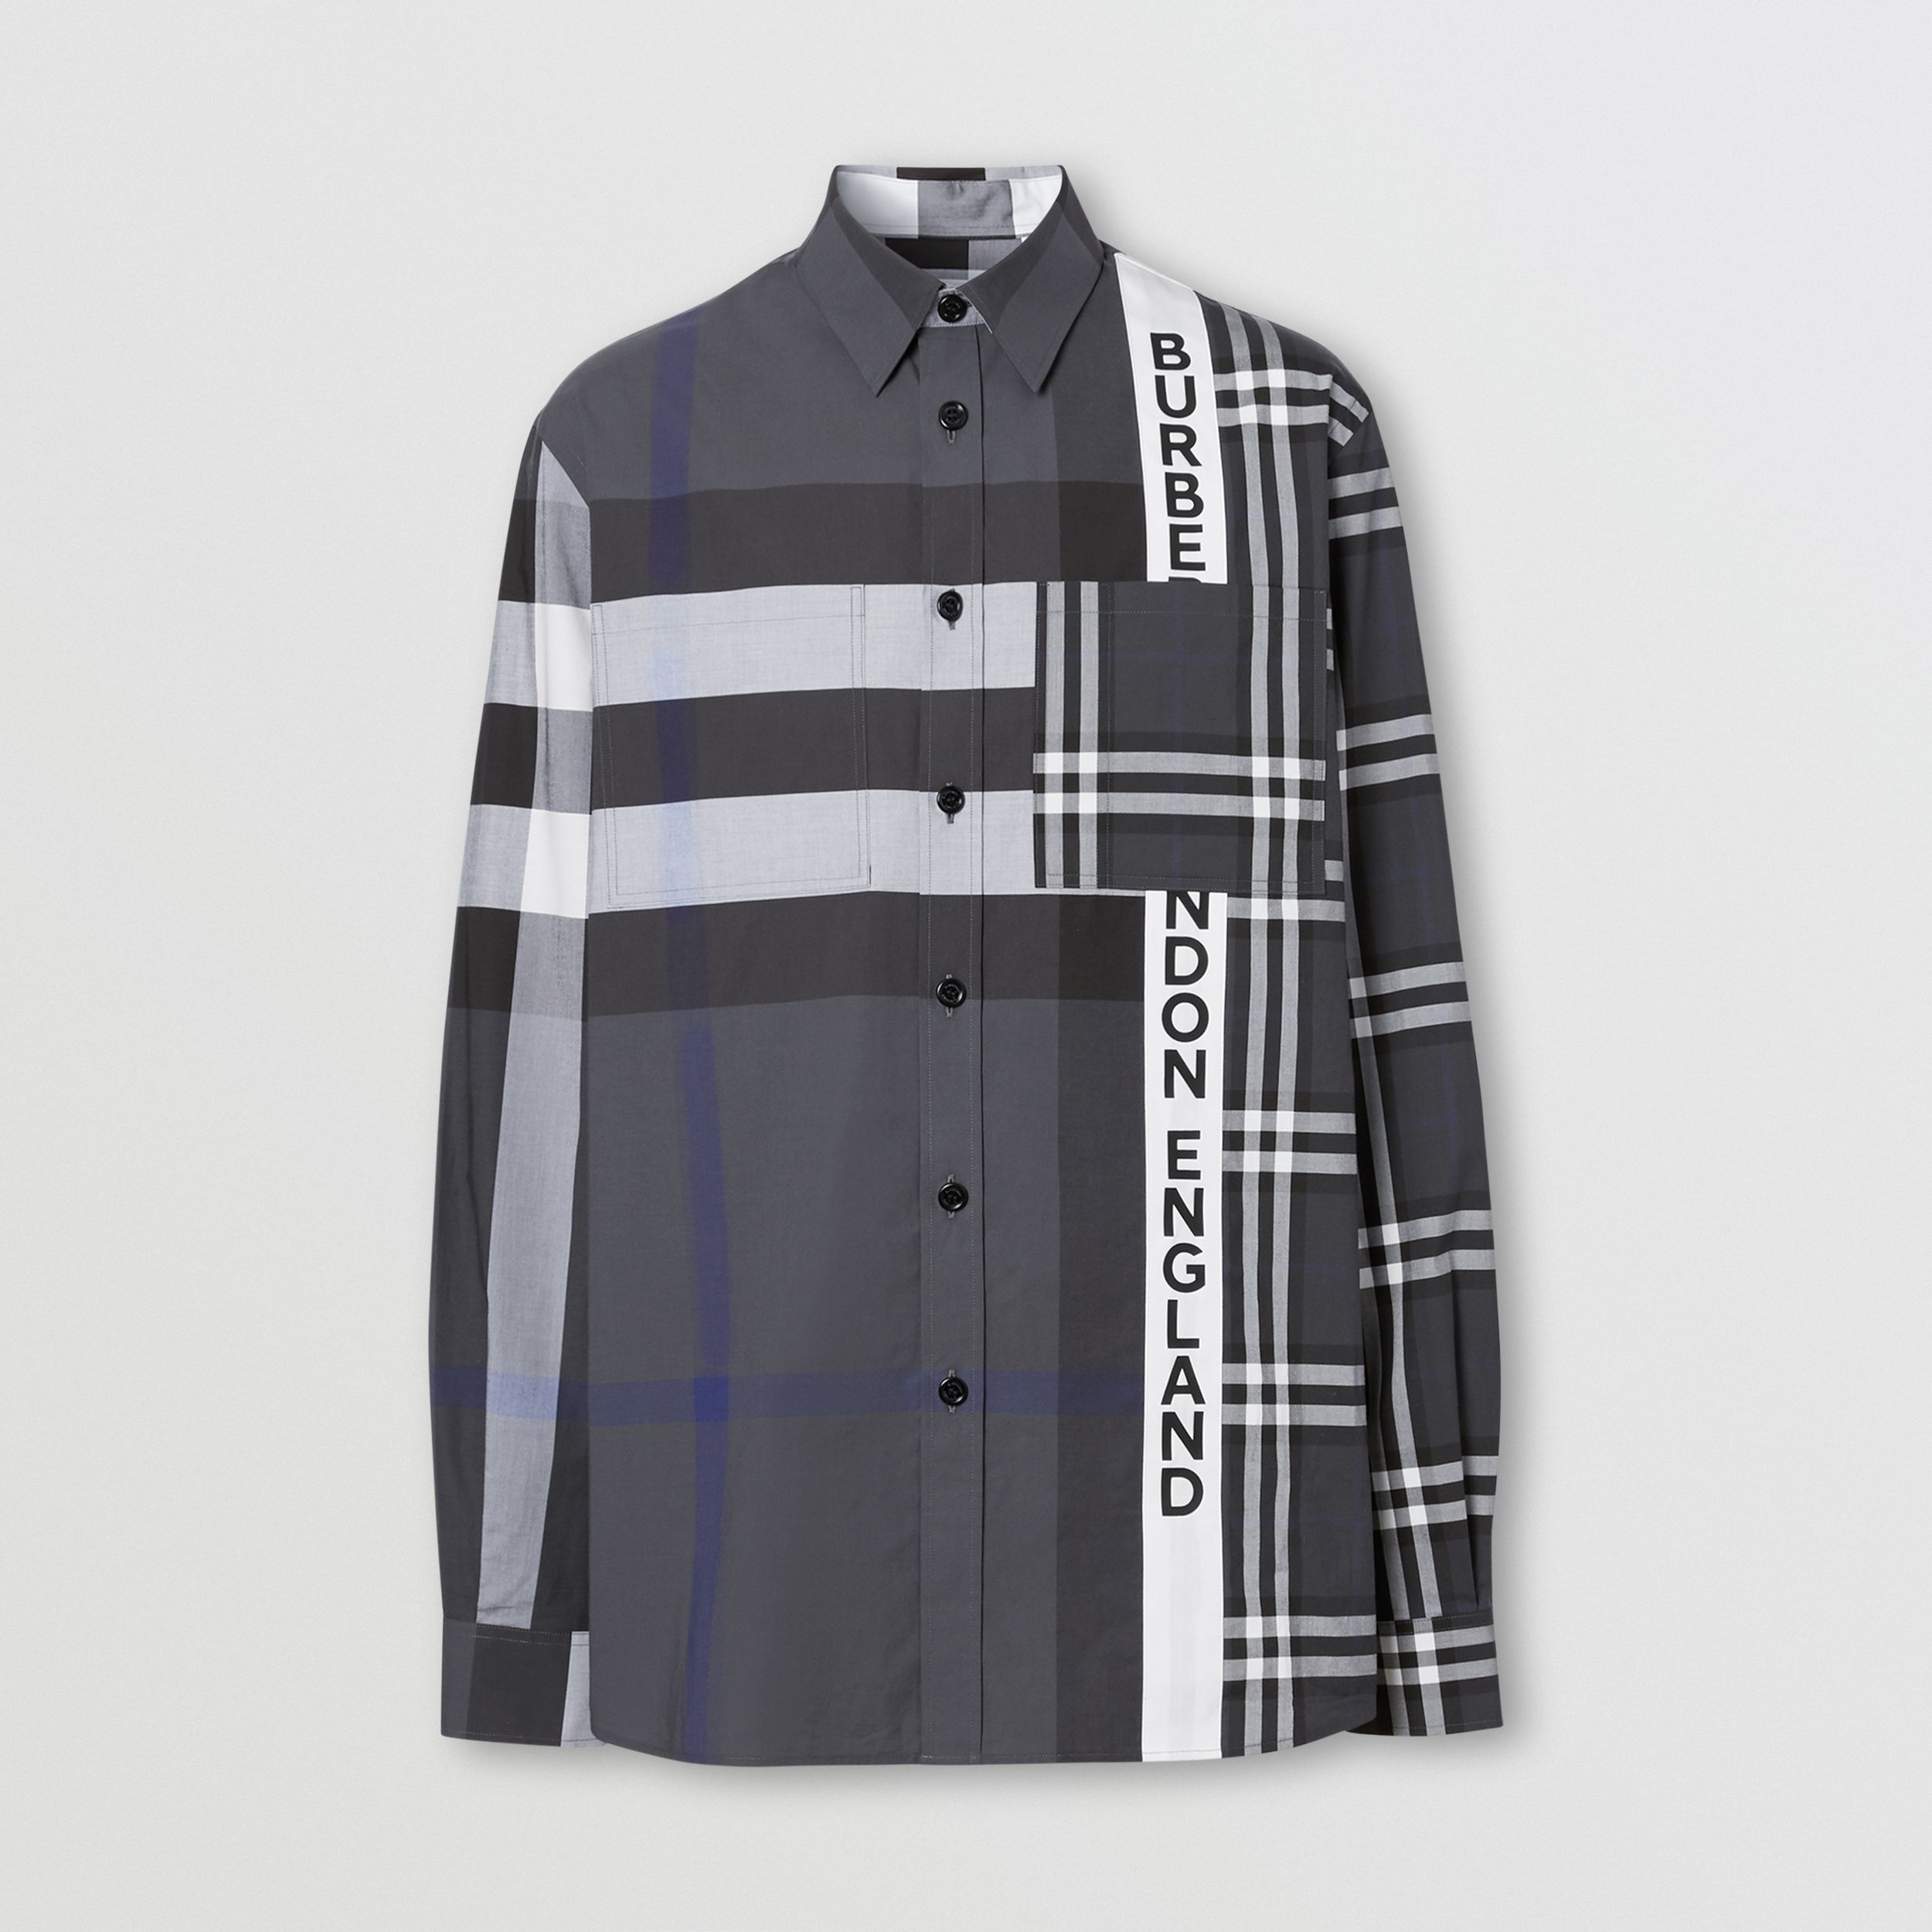 Logo Print Patchwork Check Cotton Oversized Shirt in Dark Pewter - Men | Burberry Australia - 4